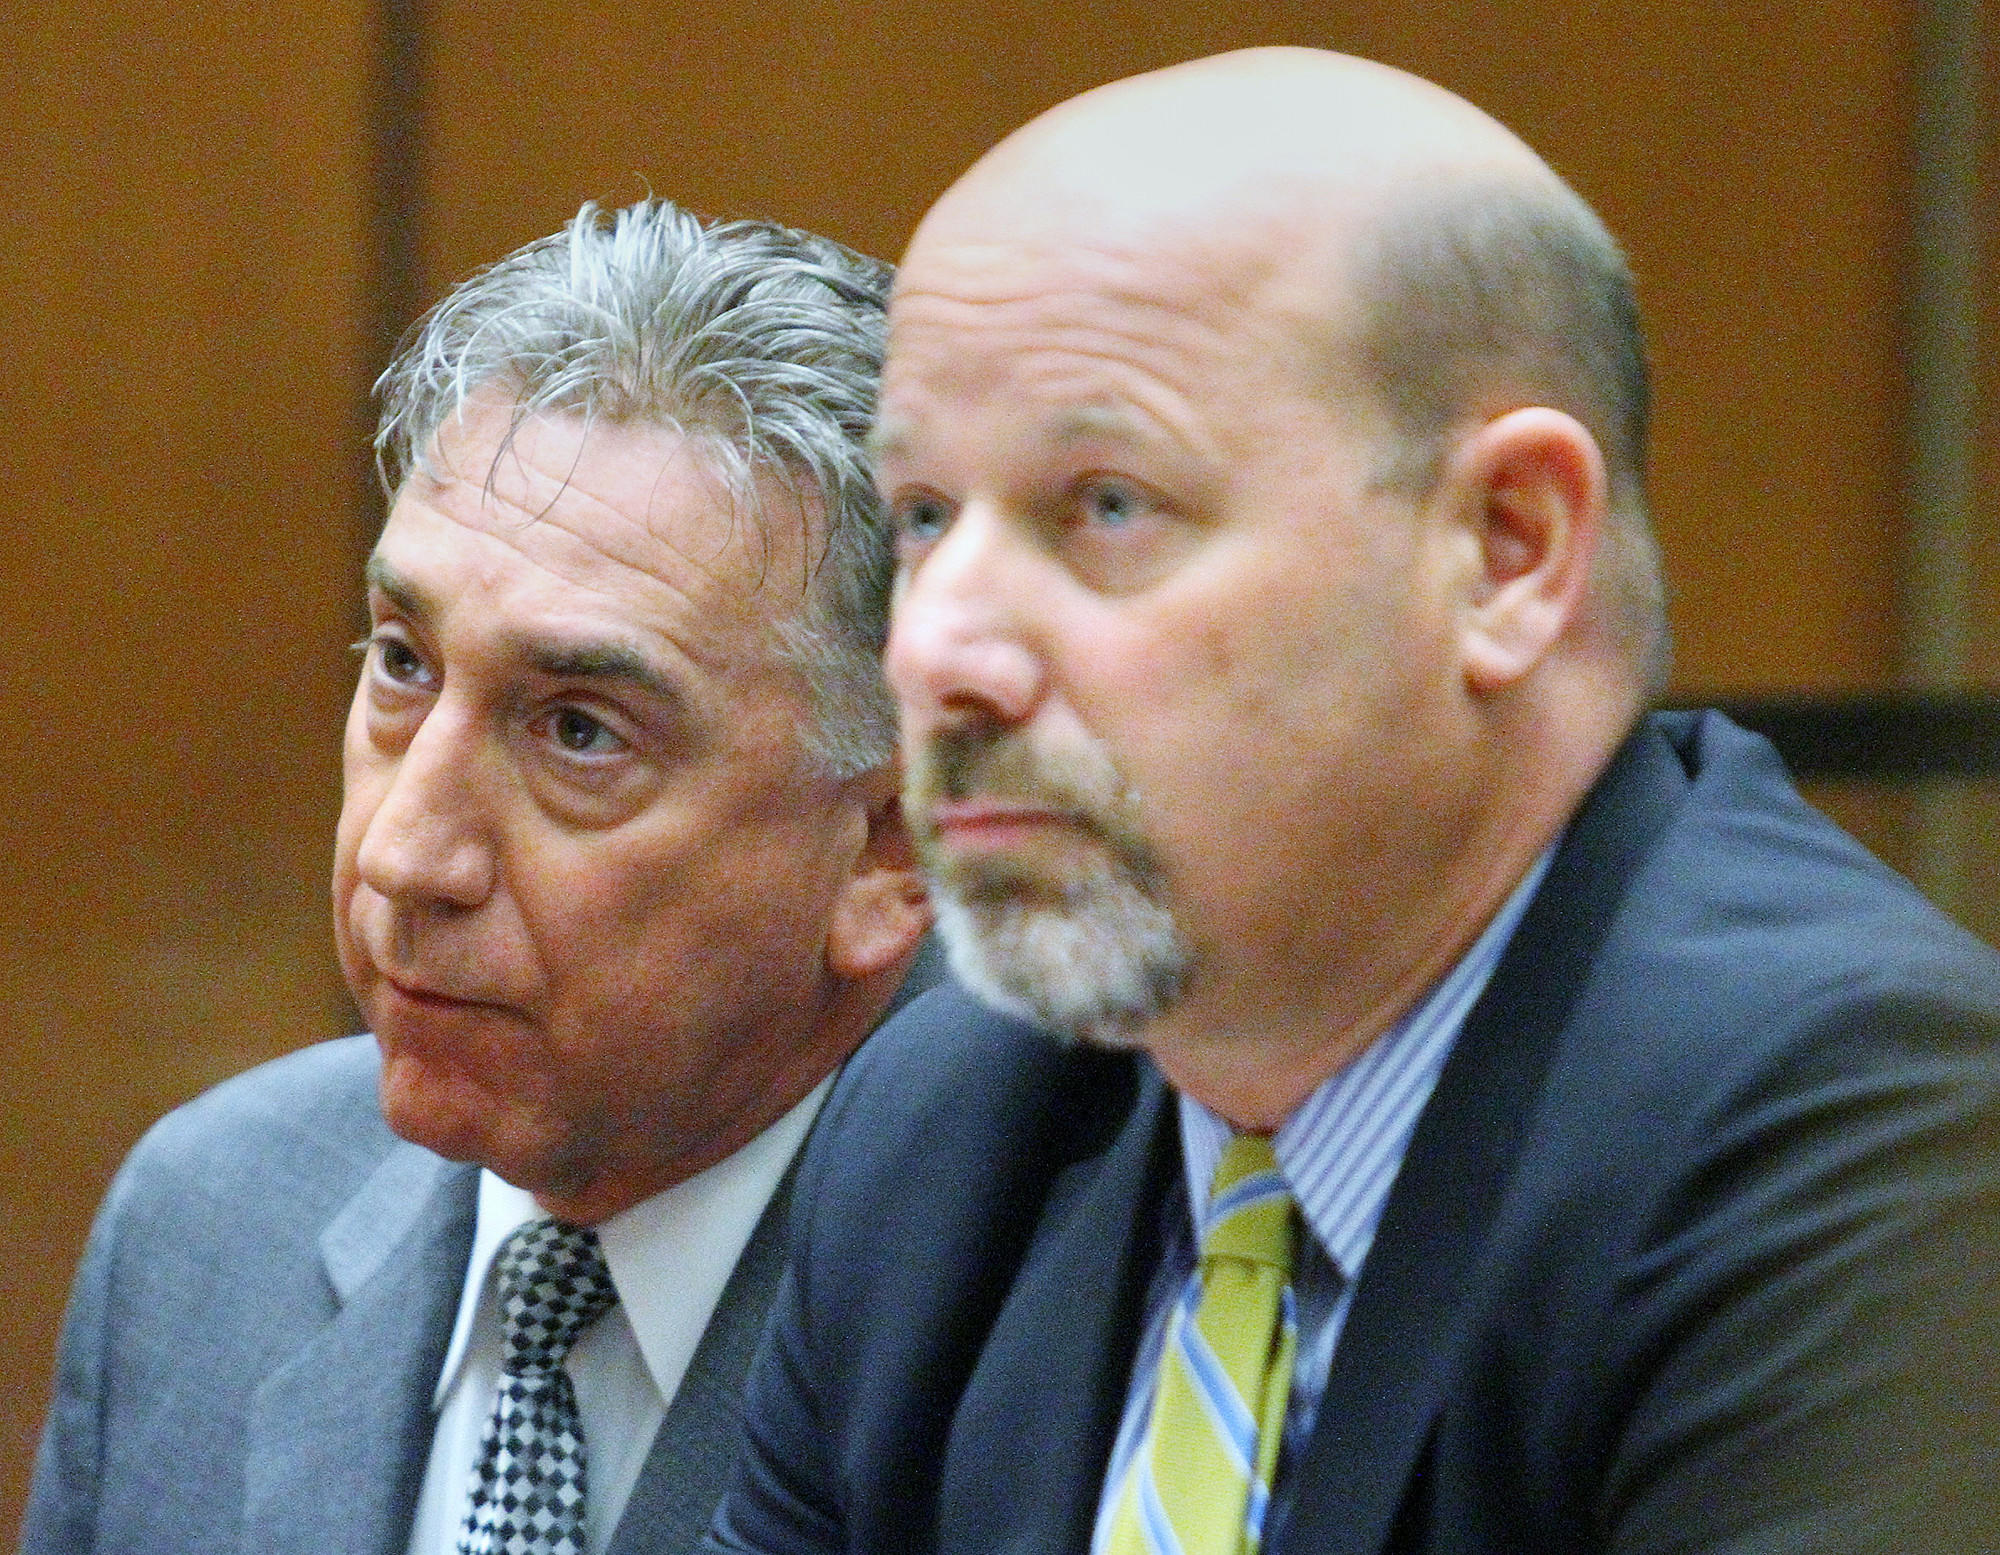 Ex-Glendale Mayor John Drayman, left, with his attorney Sean McDonald, at his sentencing in Los Angeles County Superior Court on Monday.